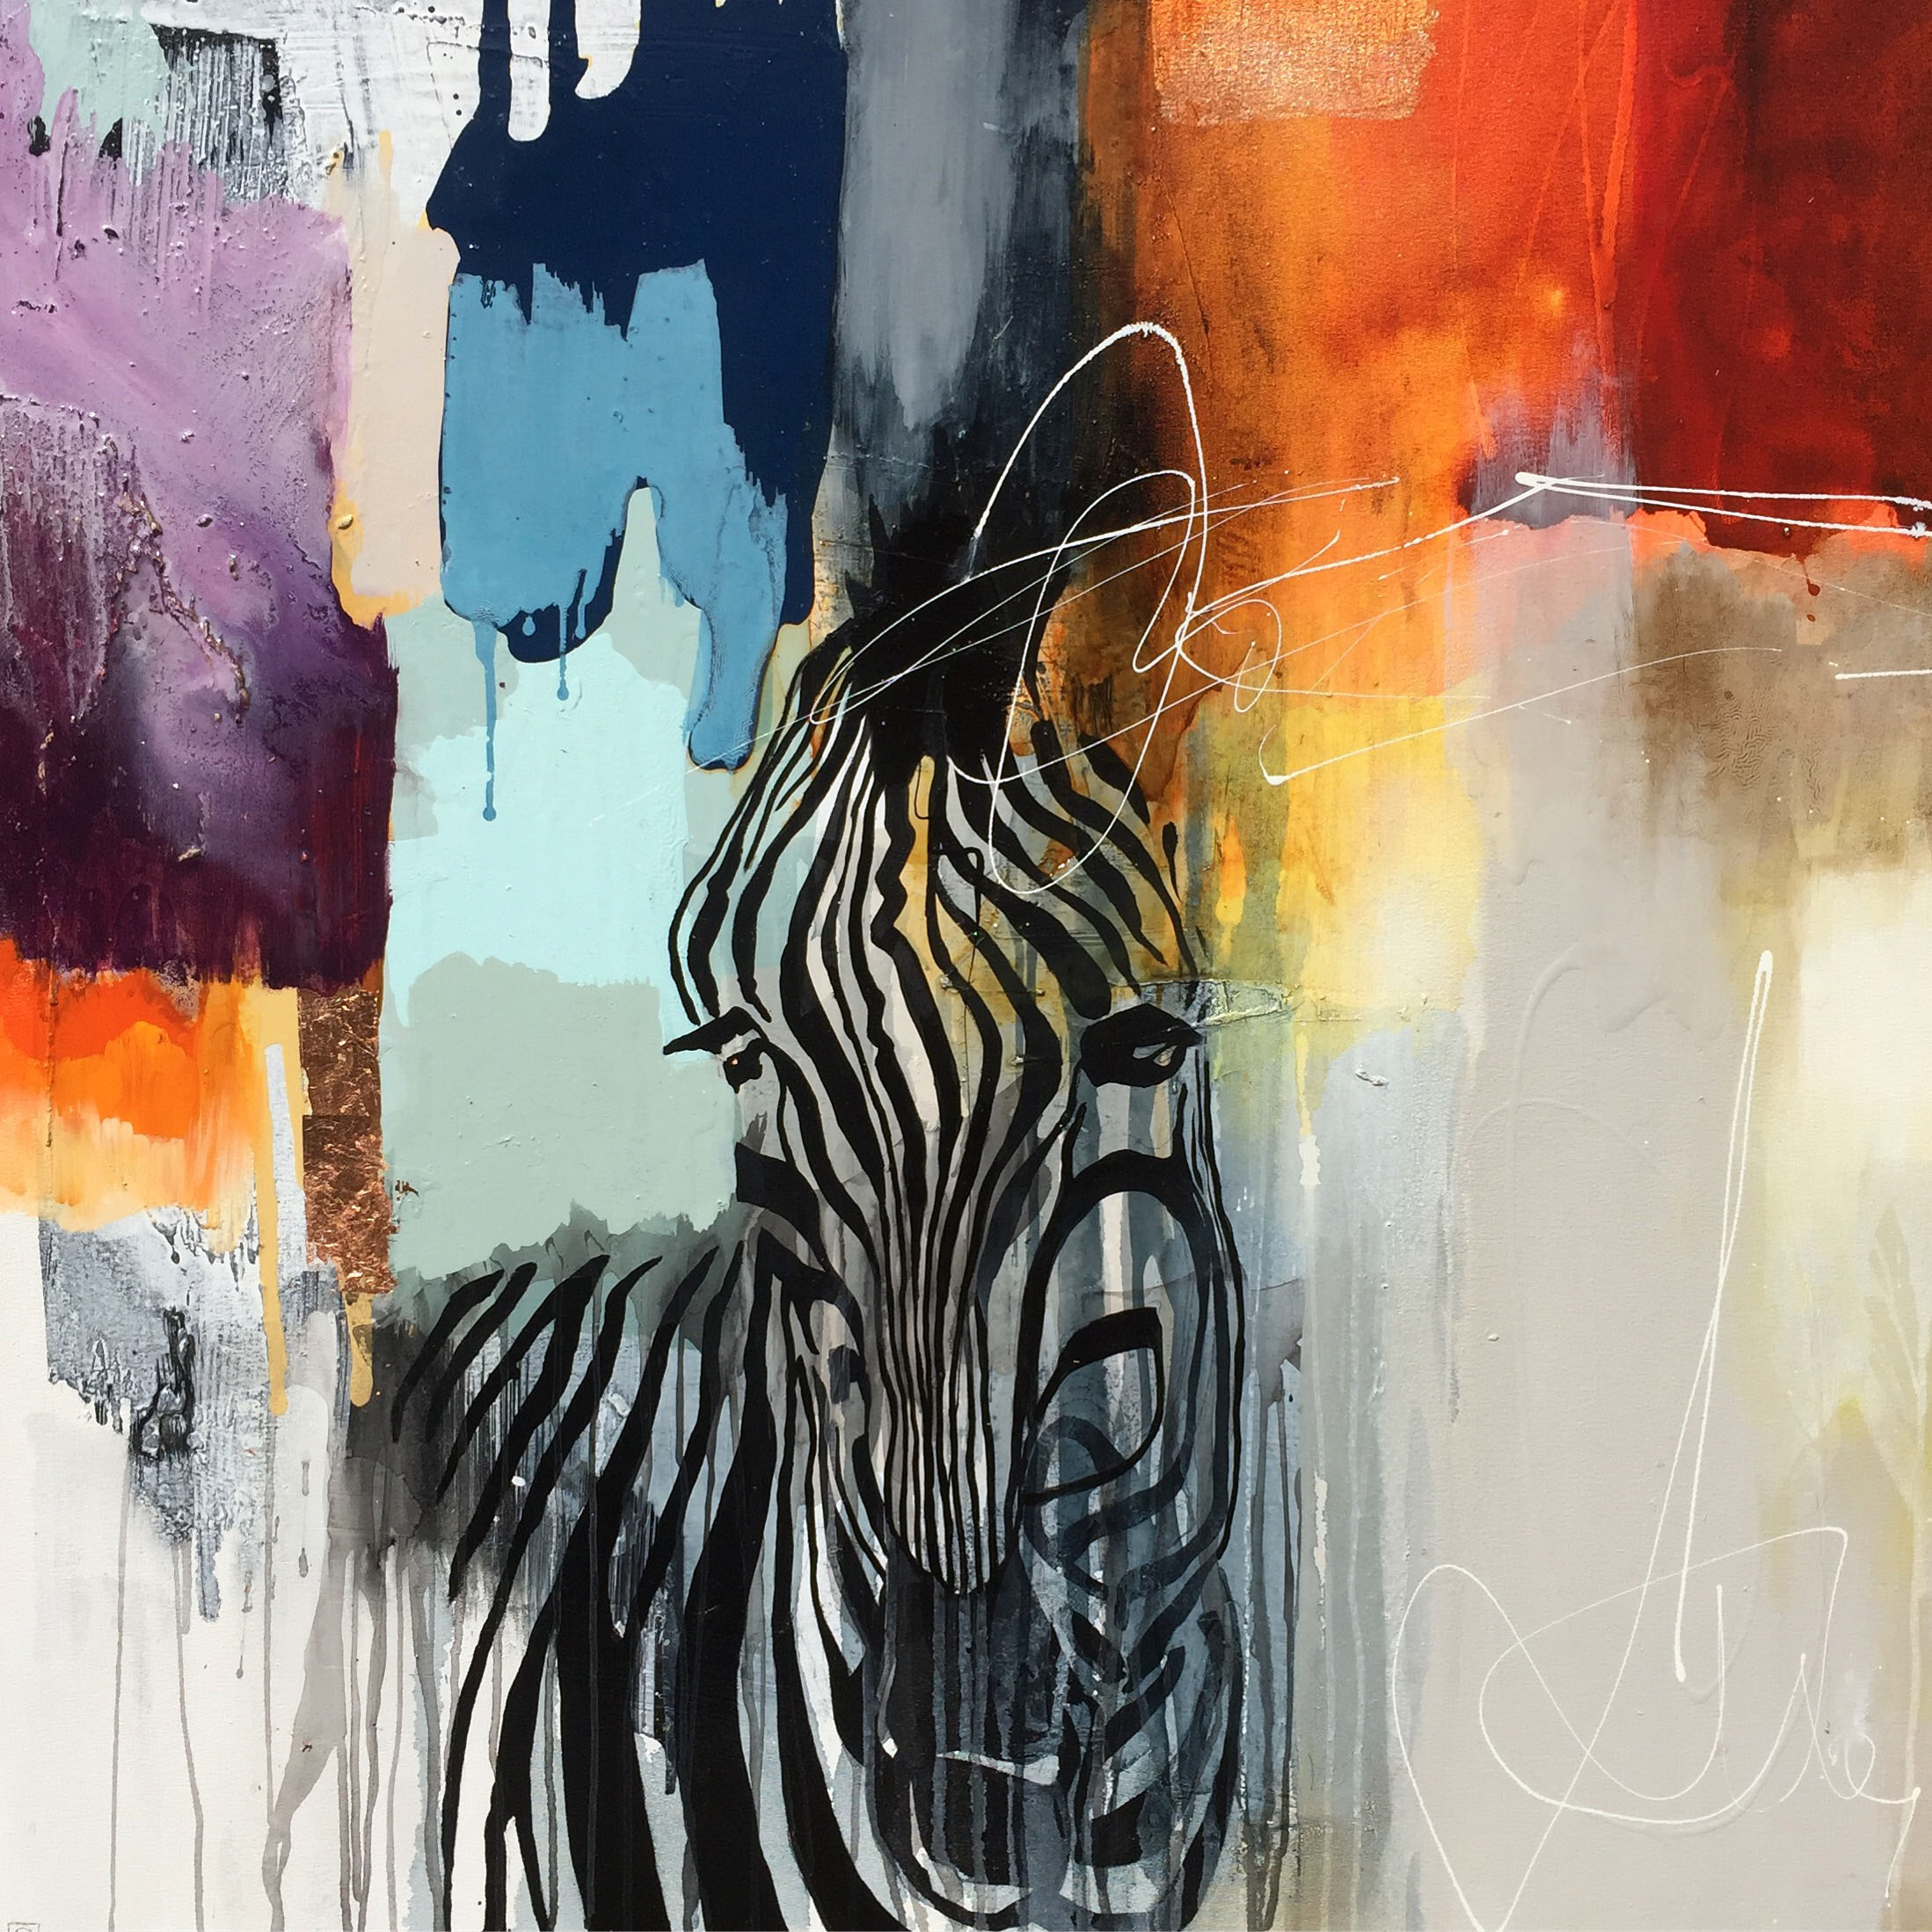 Vicky Sanders Abstract Figurative - Colourful Zebra